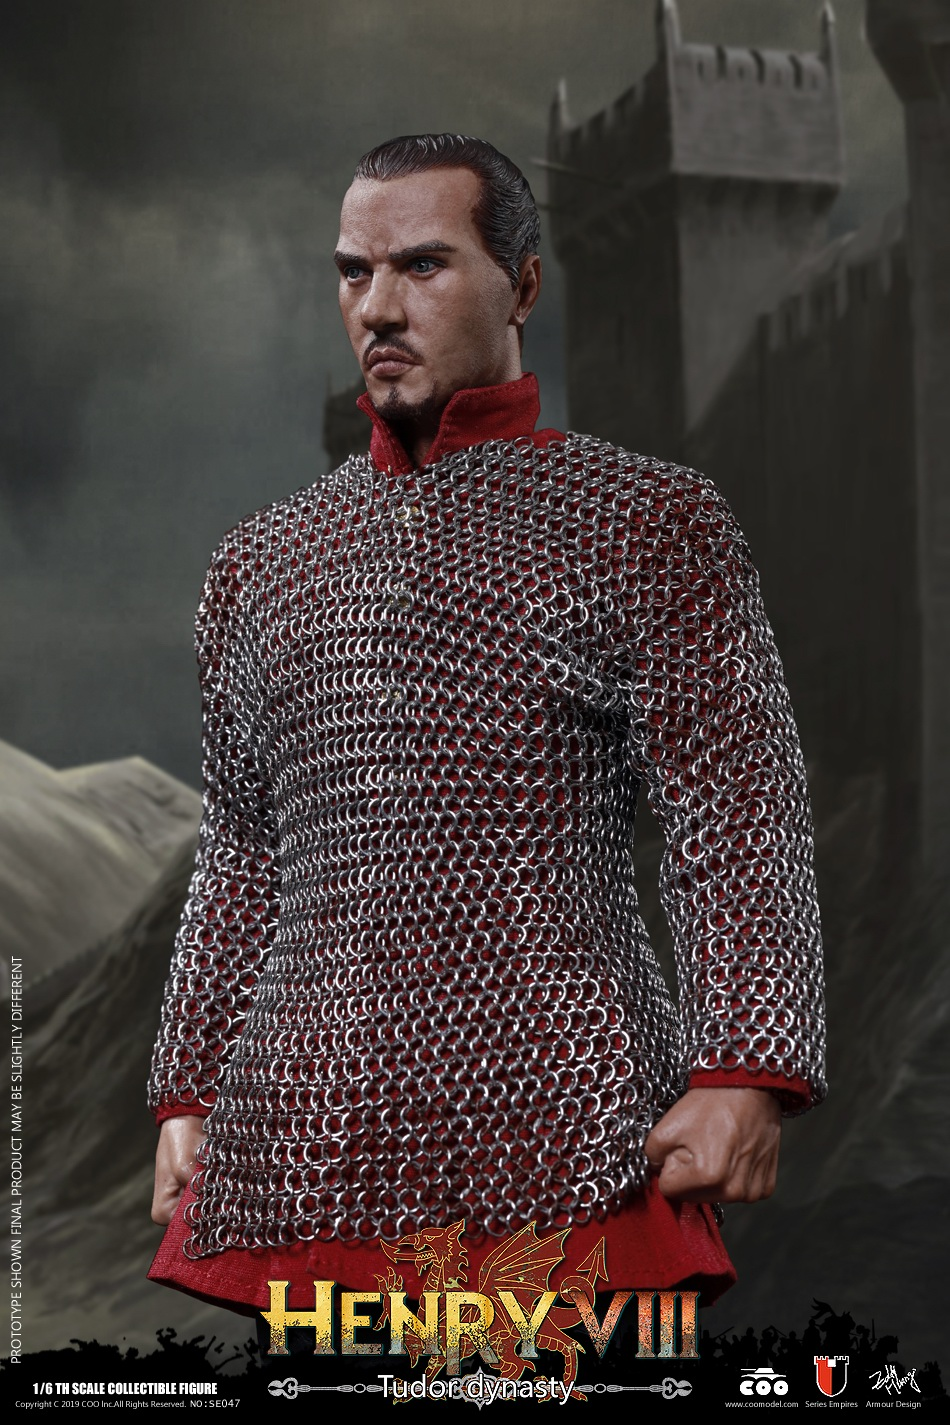 CooModel - NEW PRODUCT: COOMODEL: 1 / 6 alloy die-casting empire series - Henry VIII Lions version of the red dragon version of the Tudor version of the Wolf Hall scene 00364011